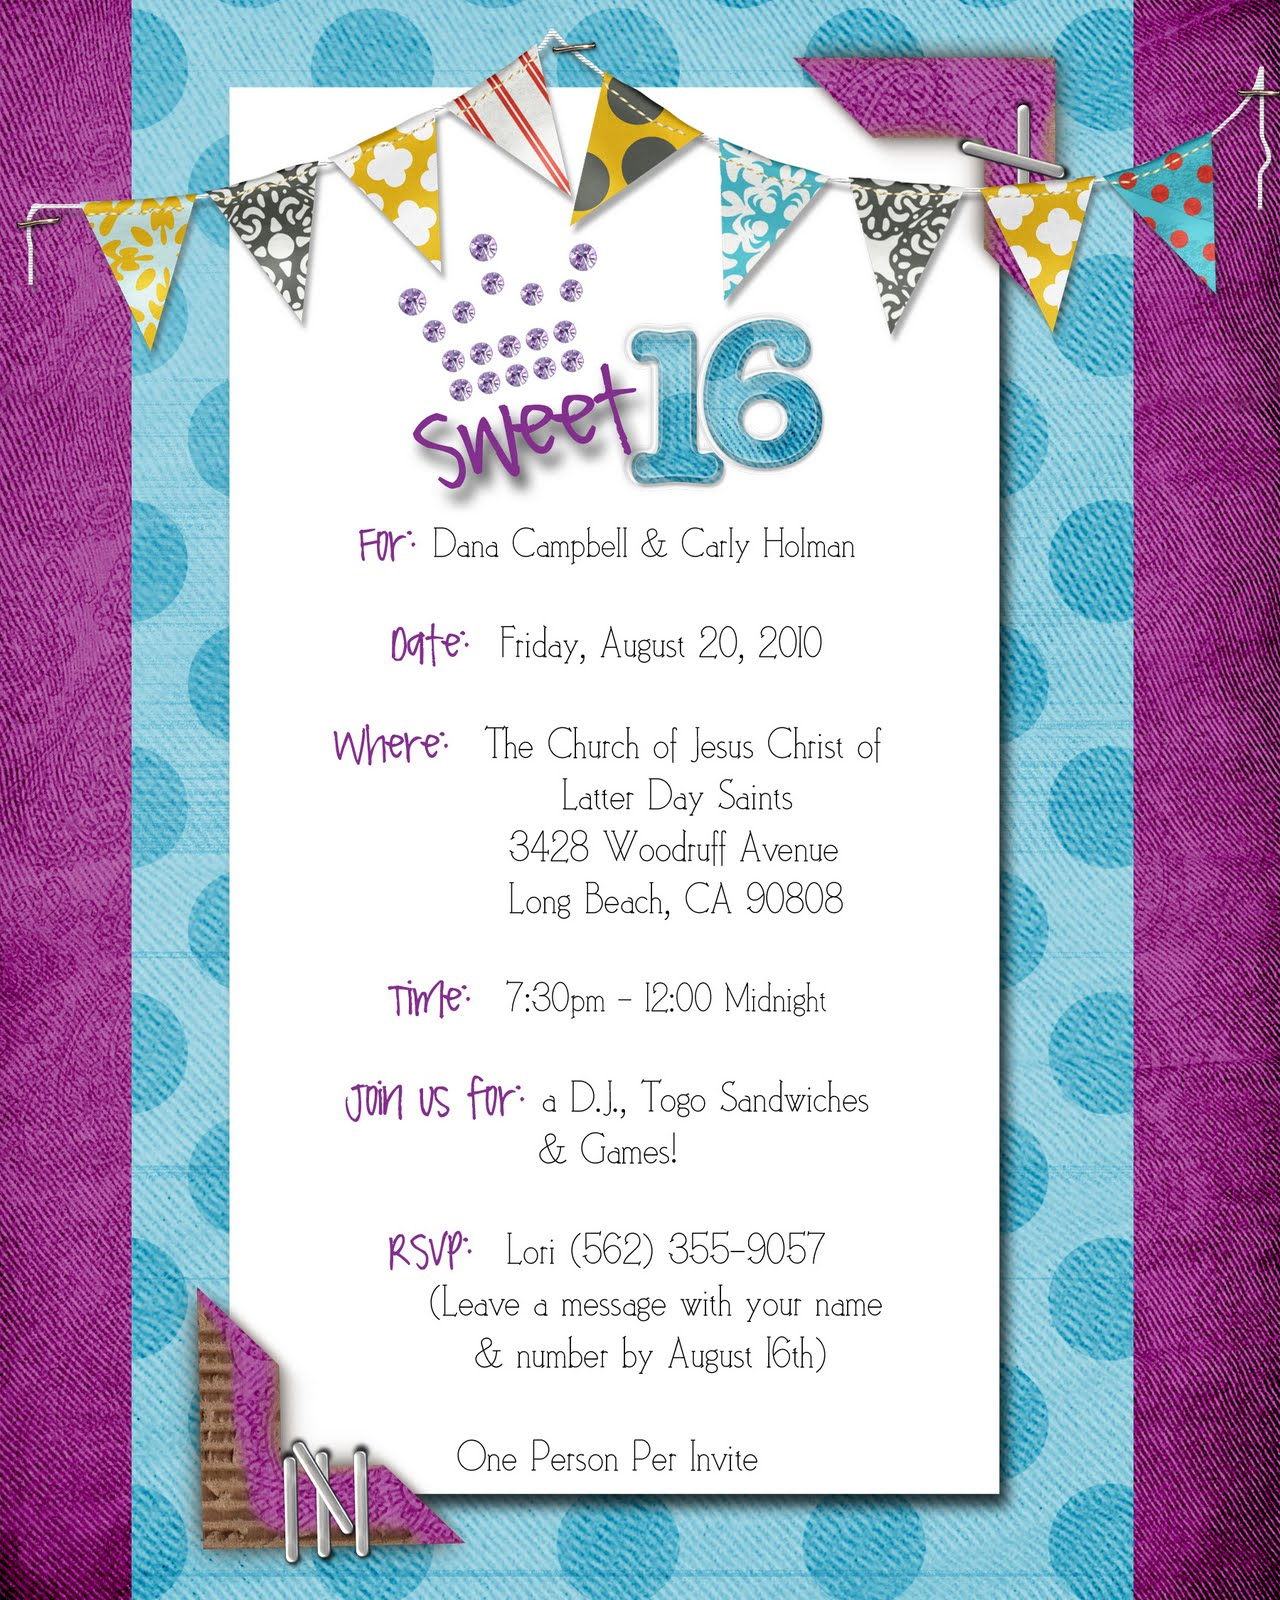 Invitations For Sweet 15 was best invitations sample